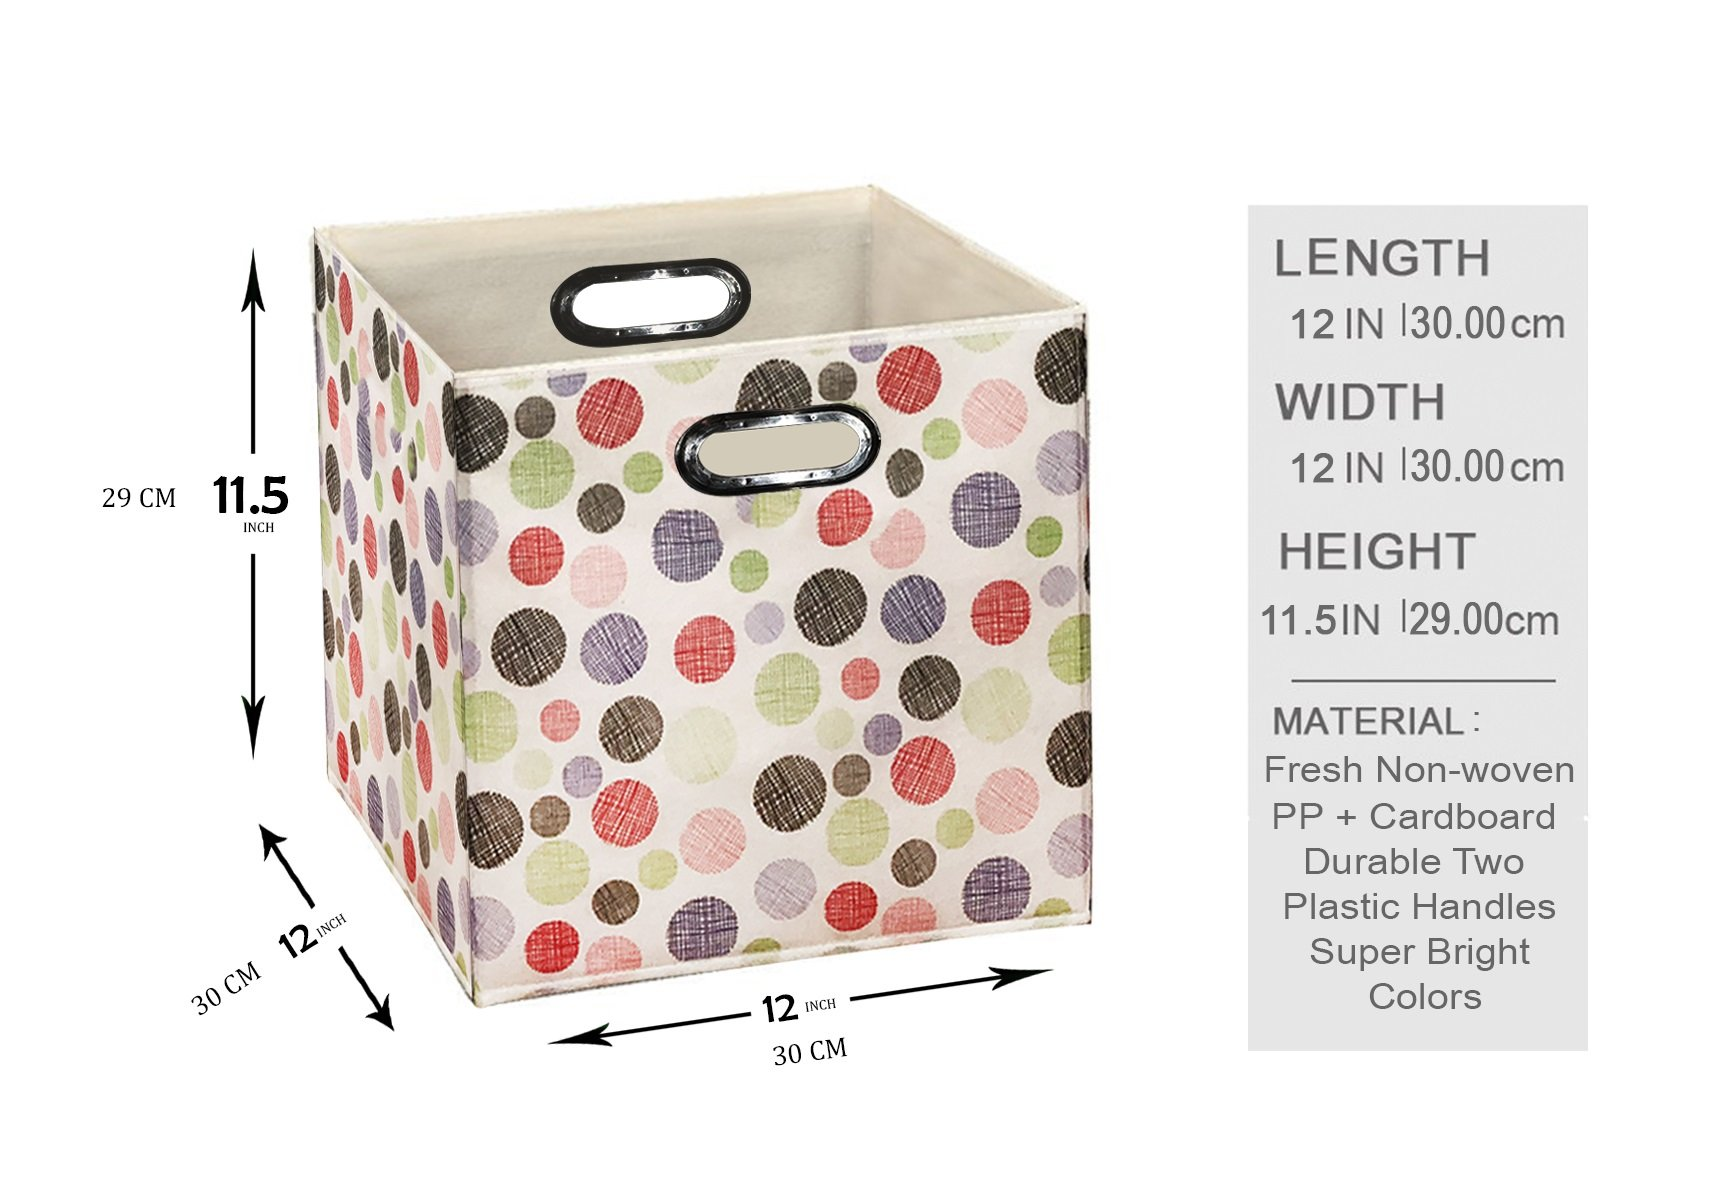 [6 Pack,Polka & Love Pattern] Large Storage Bins, Containers, Boxes, Tote, Baskets| Collapsible Storage Cubes For Household Offices Organization |Nursery Foldable Fresh Cubes| Dual Plastic Handle by Prorighty (Image #3)